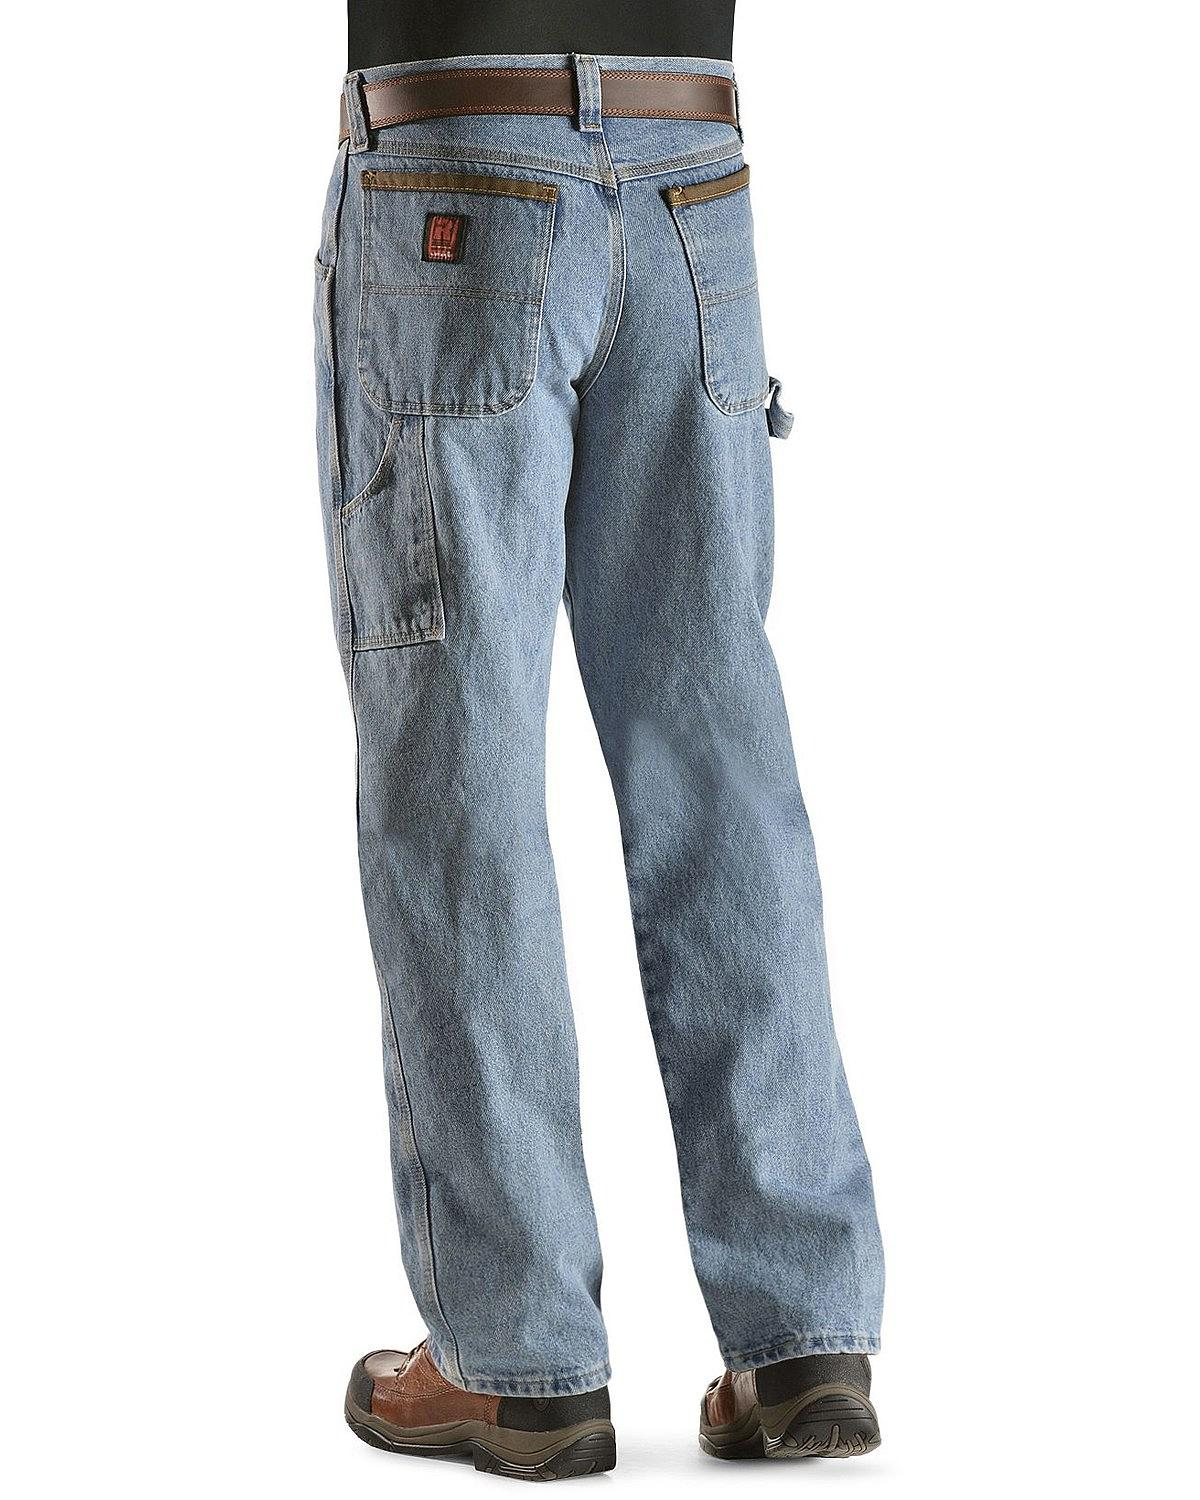 0a839b33 Riggs Workwear by Wrangler Mens Big & Tall Carpenter Jean Vintage ...